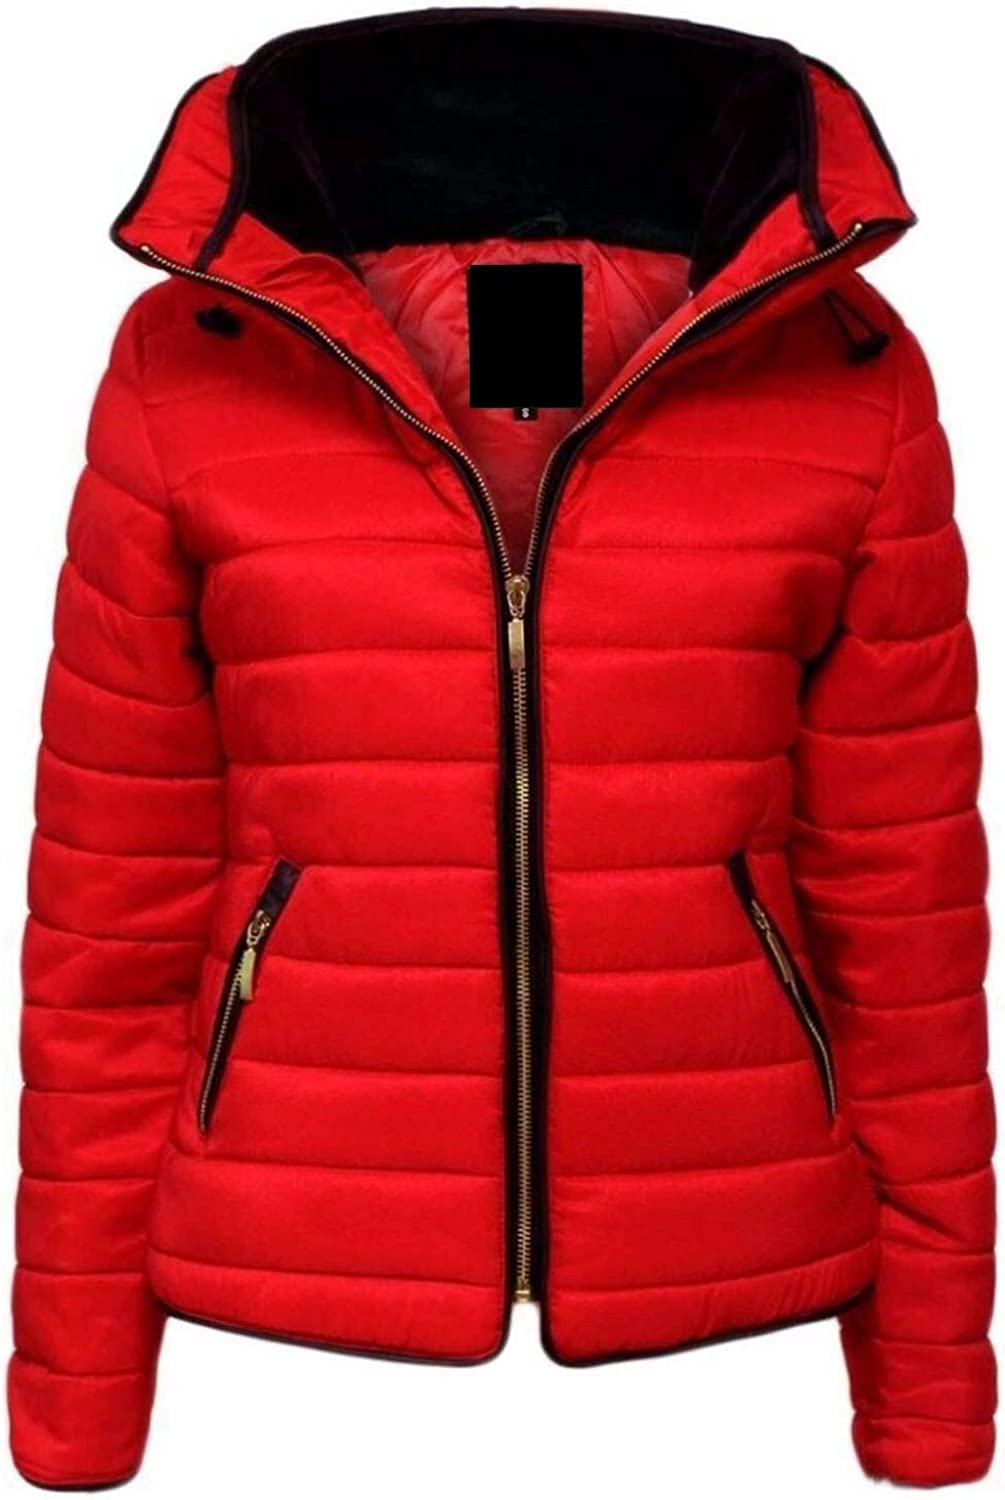 Stylozuk Kids Girls Puffer Fashion Jacket Warm Bubble Fur Collar Hooded Puffa Padded Quilted Coat